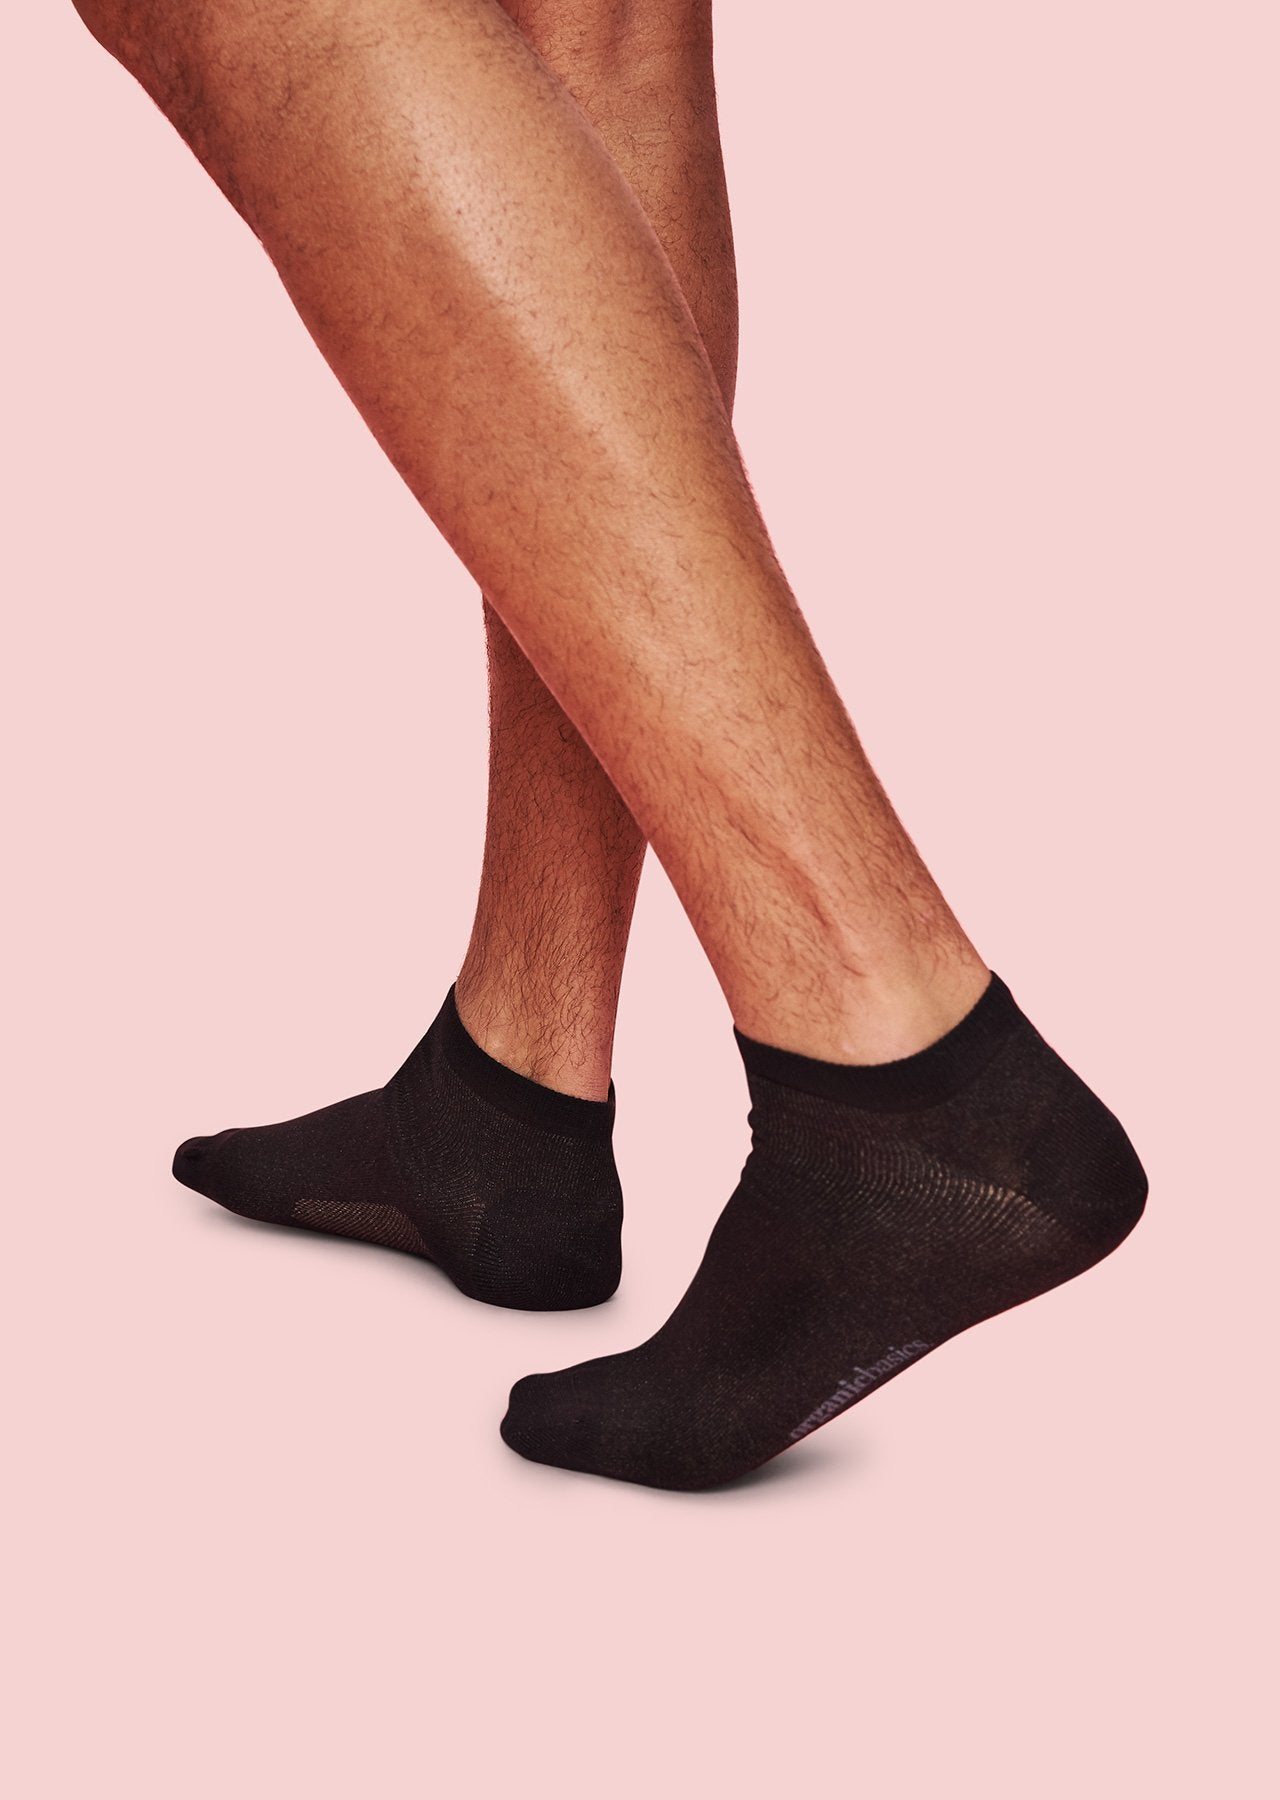 Men's SilverTech Ankle Socks in Black 2-pack-Socks-Sancho's Dress